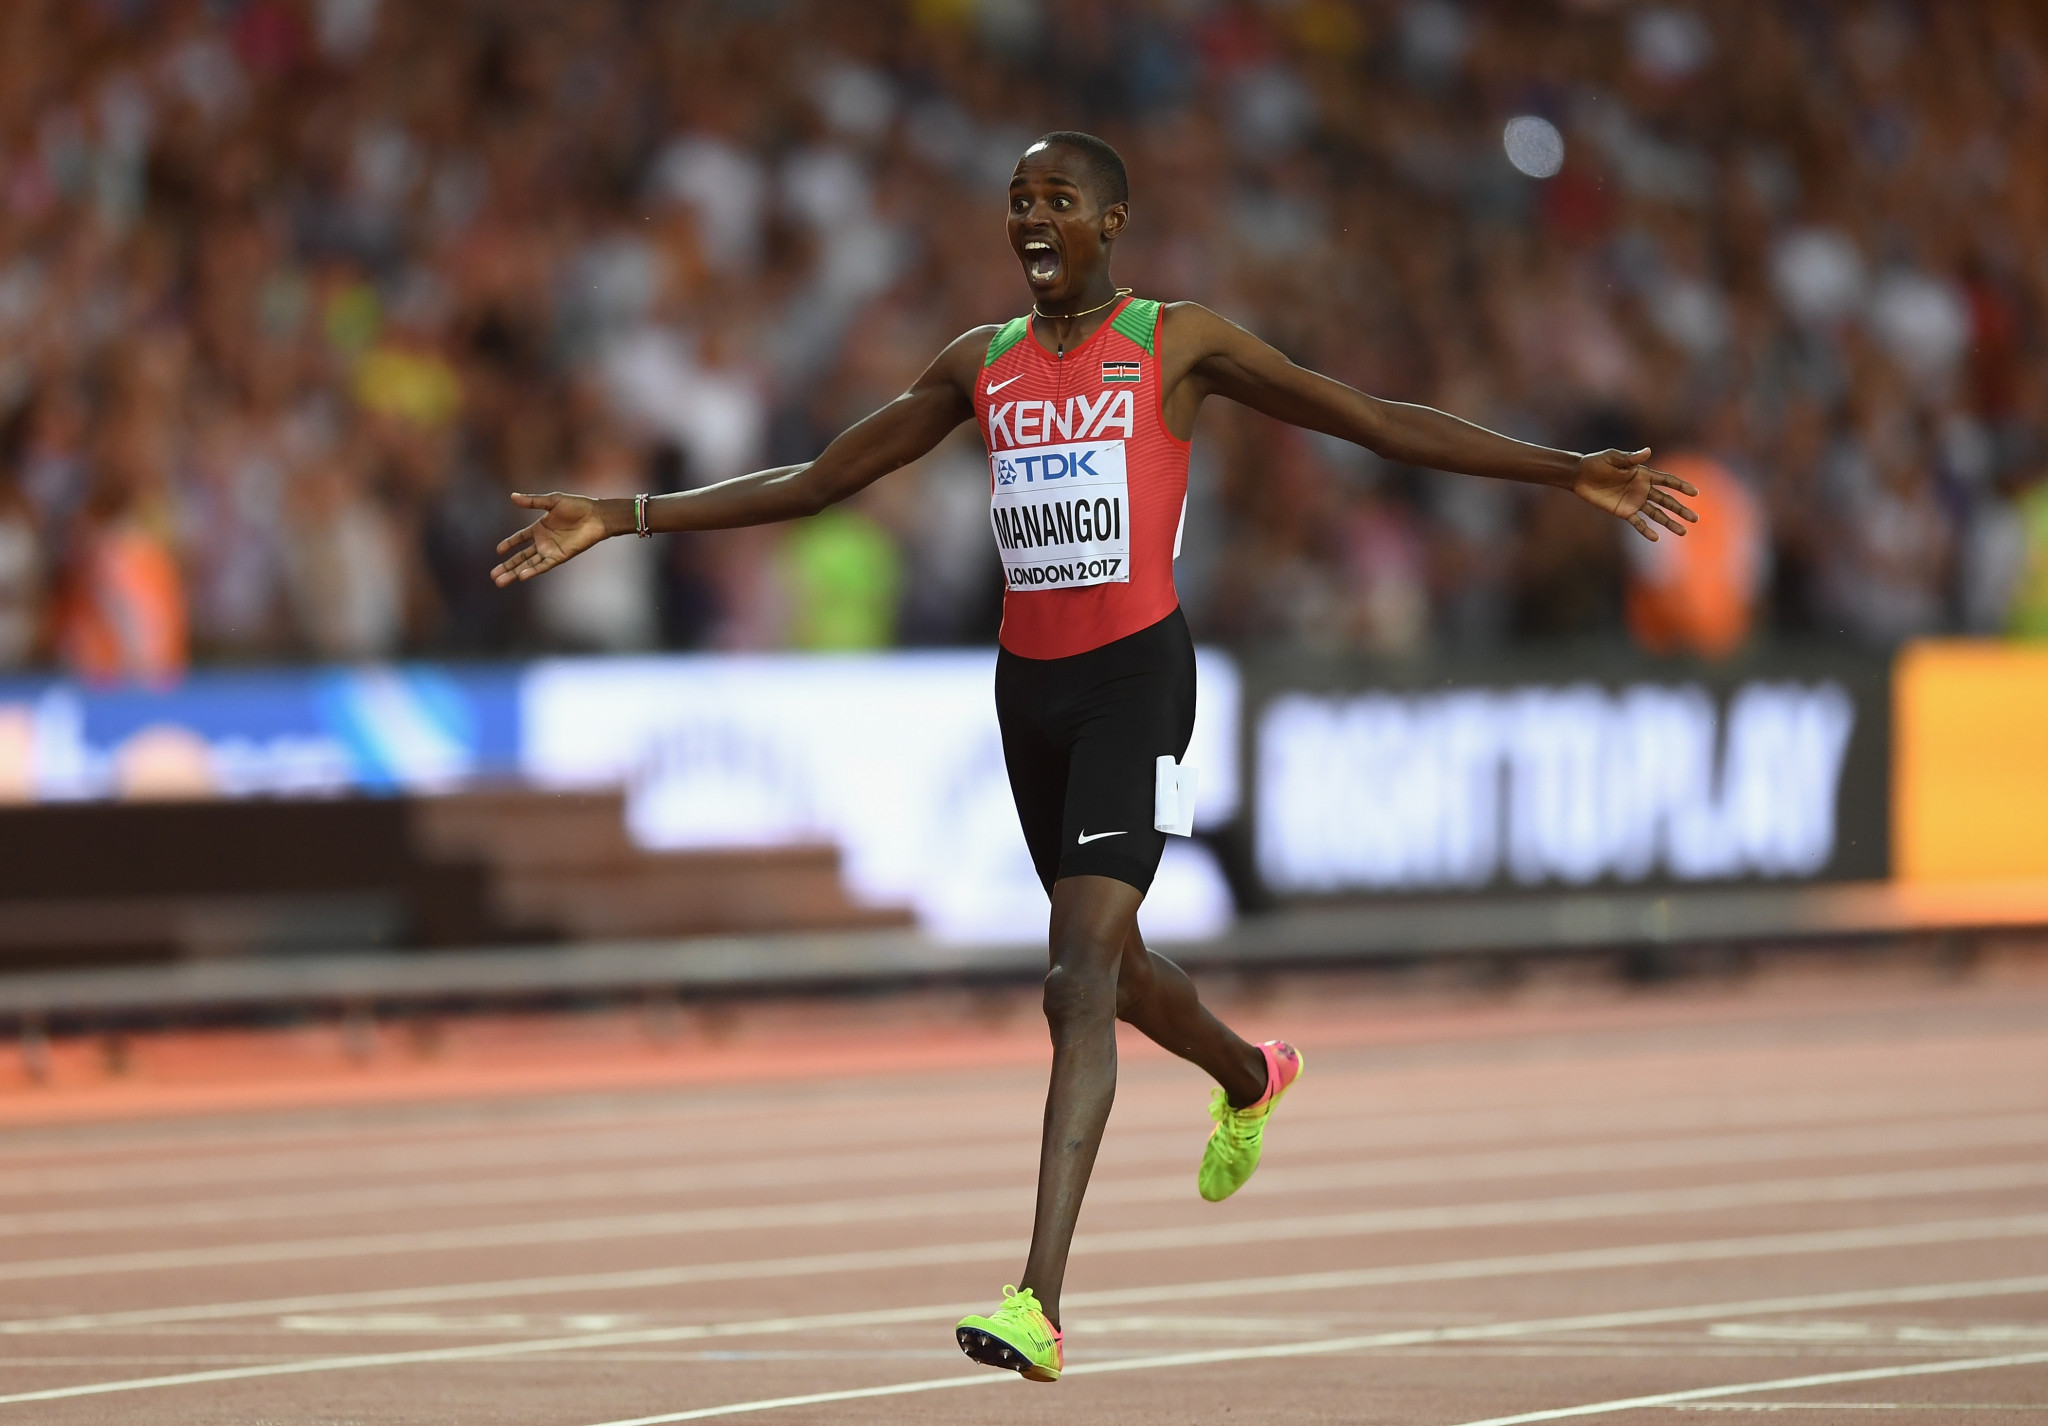 Elijah Manangoi celebrates winning the 1500m at the 2017 World Championships in London ©Getty Images